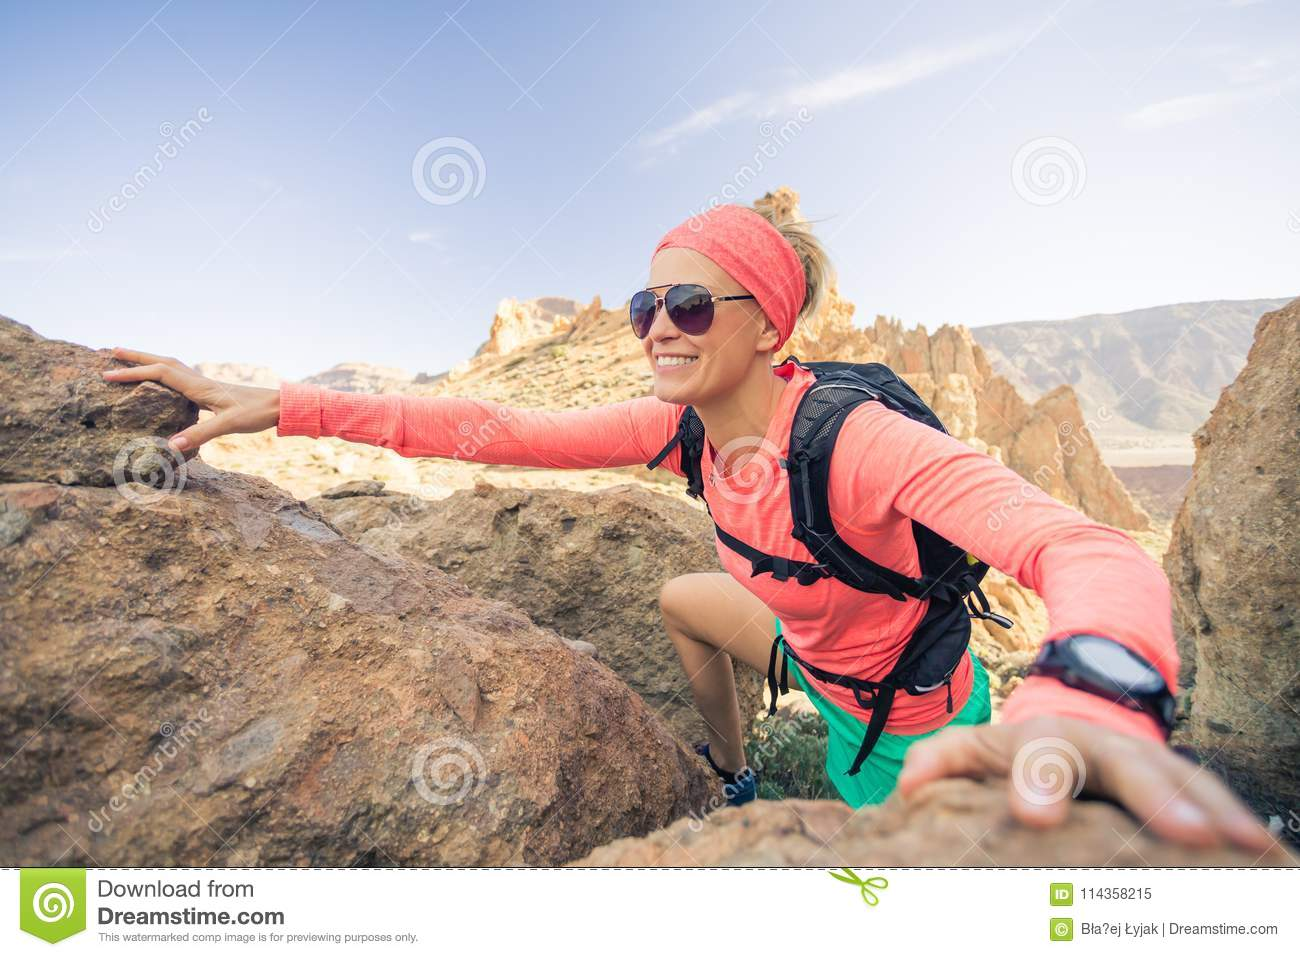 66fe6e2f631 Woman hiker reached mountain top. Inspiration and motivation for weekend  adventures. Female runner or climber looking at inspirational landscape on  rocky ...